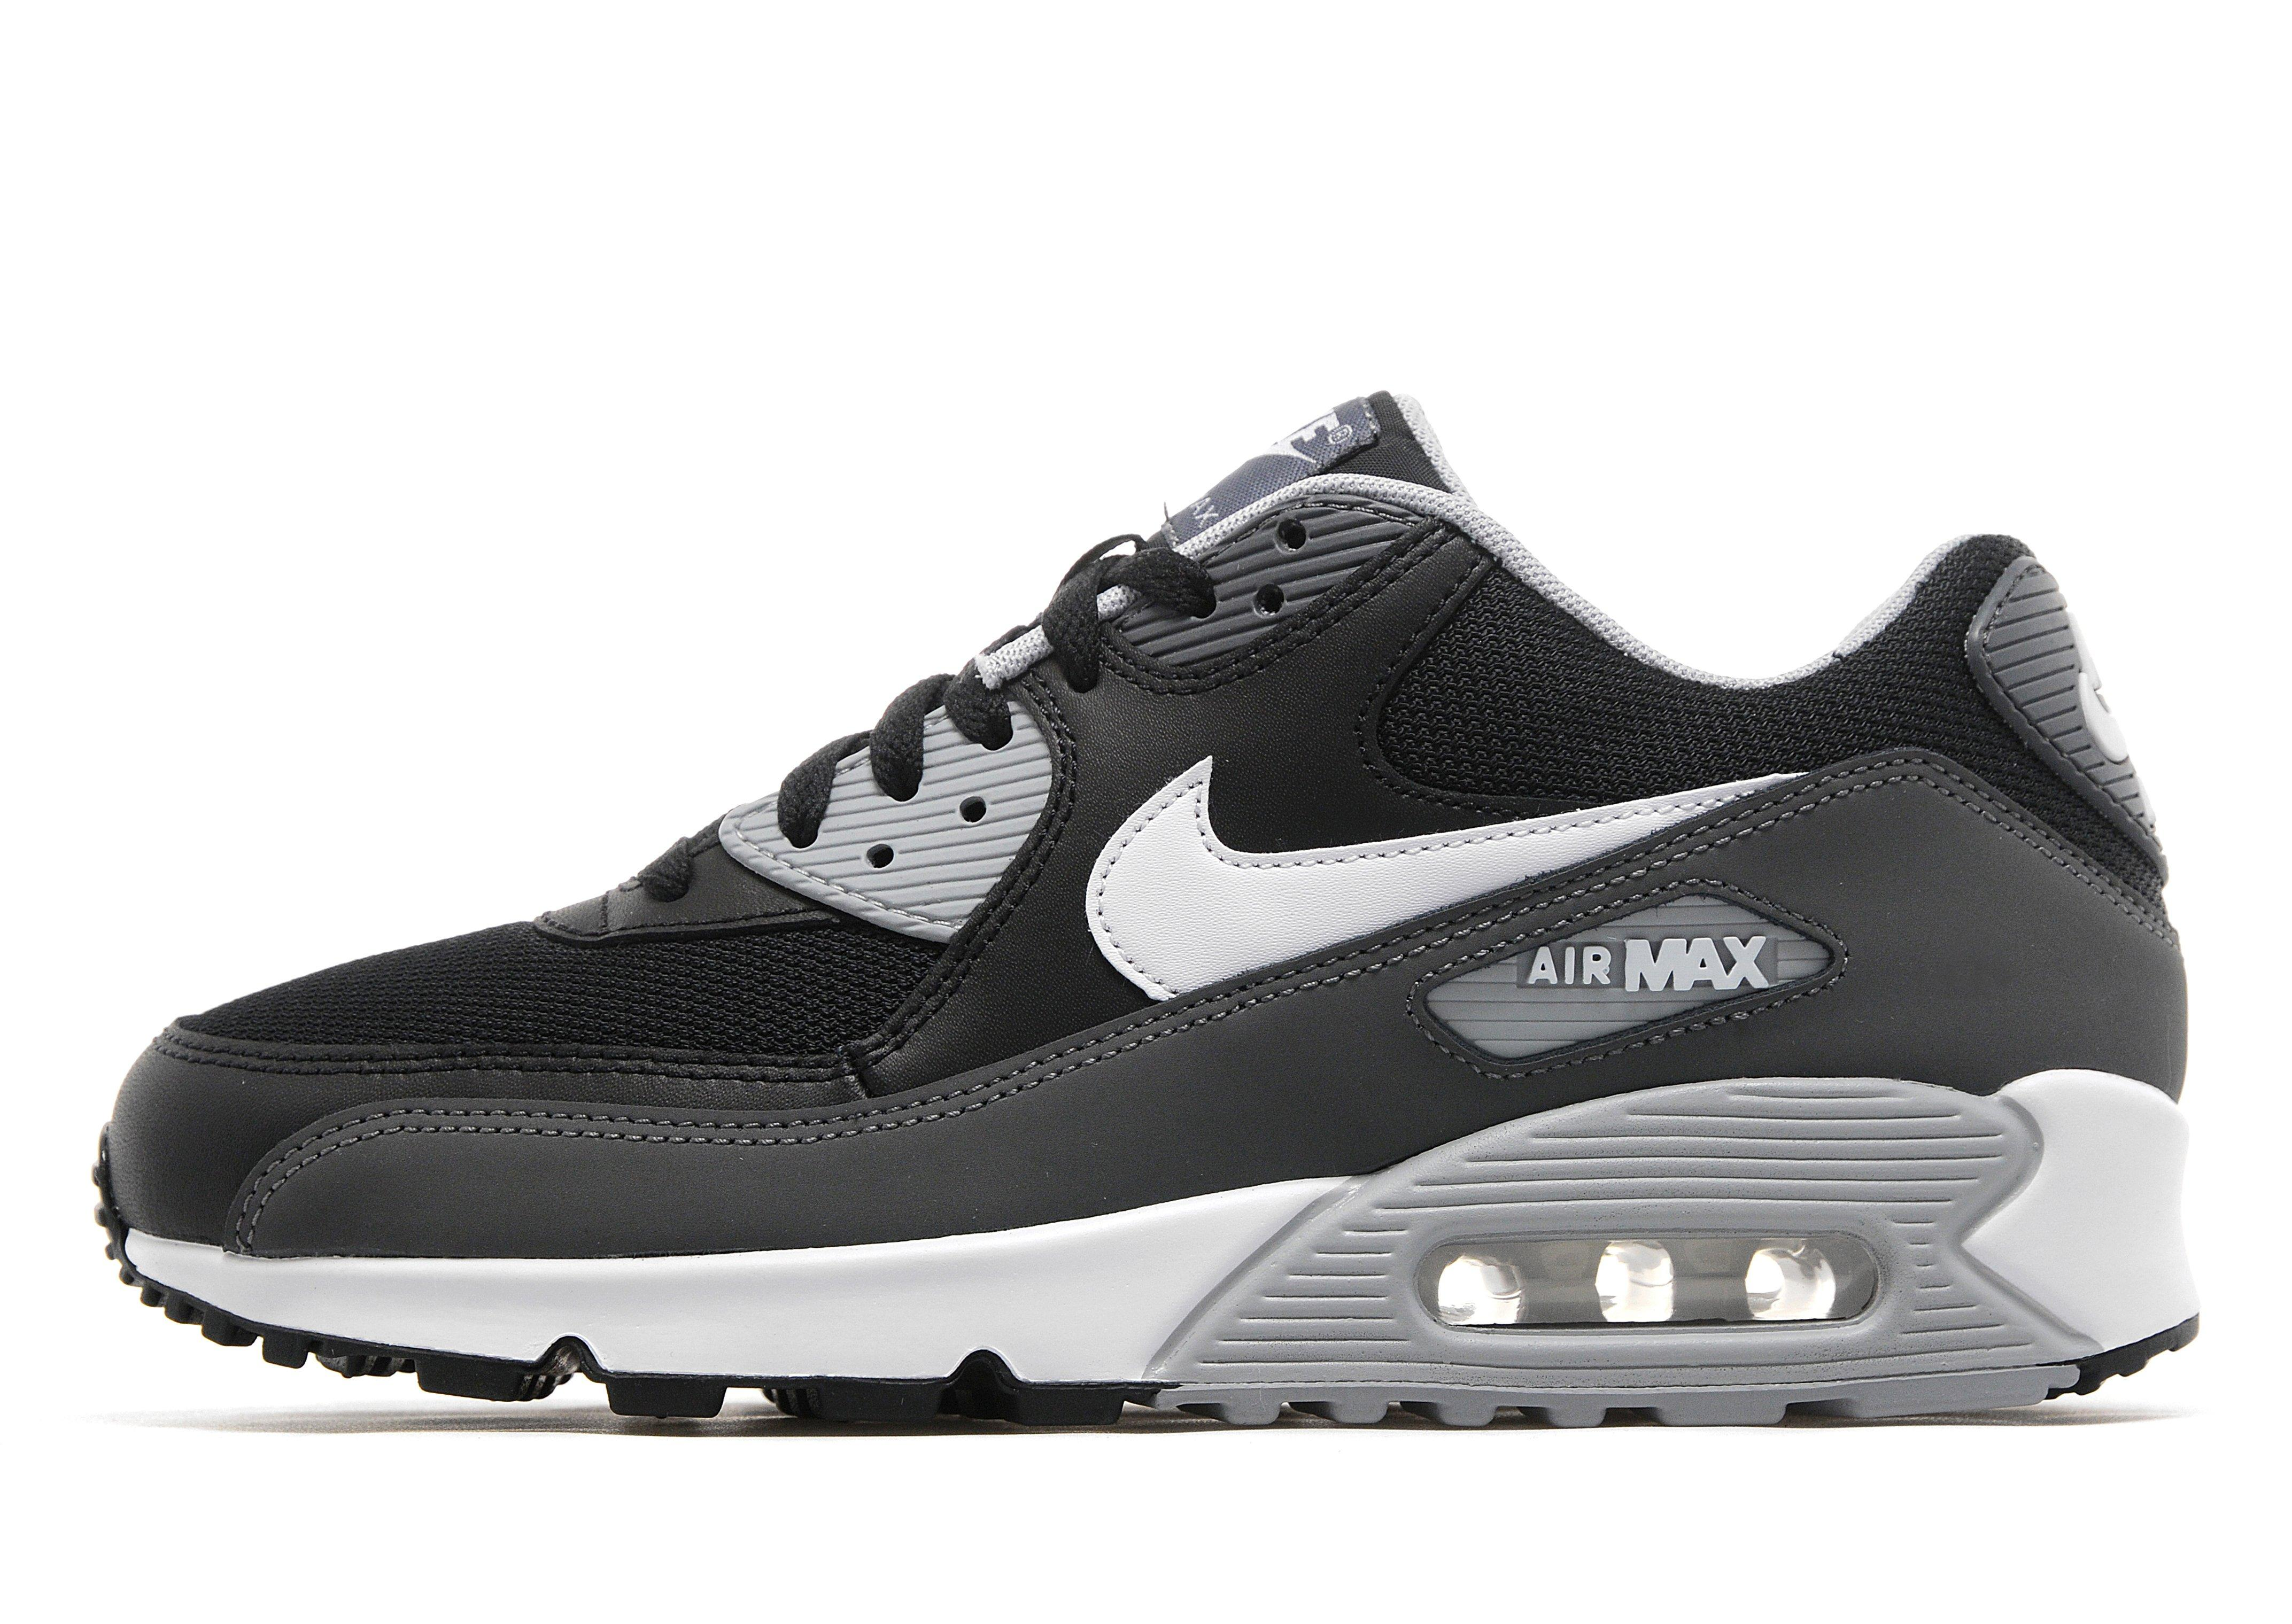 Nike Air Max 90 Jd Sports lanarkunitedfc.co.uk